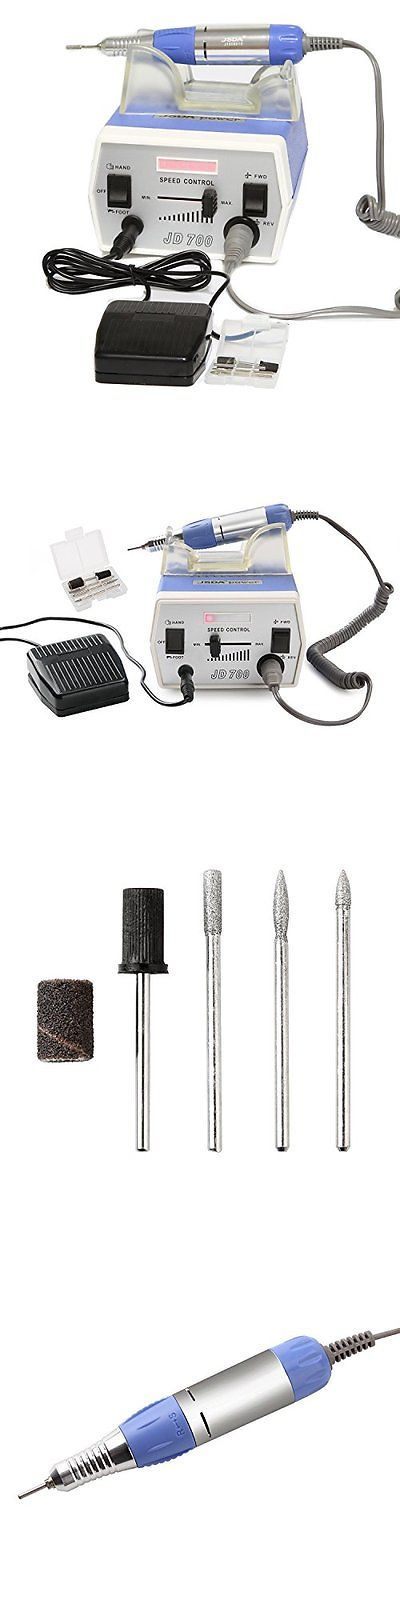 Electric Files and Tools: 30000Rpm Nail Drill Machine Electric Nail File Foot Pedal Acrylic Bits Set Hi... BUY IT NOW ONLY: $71.22